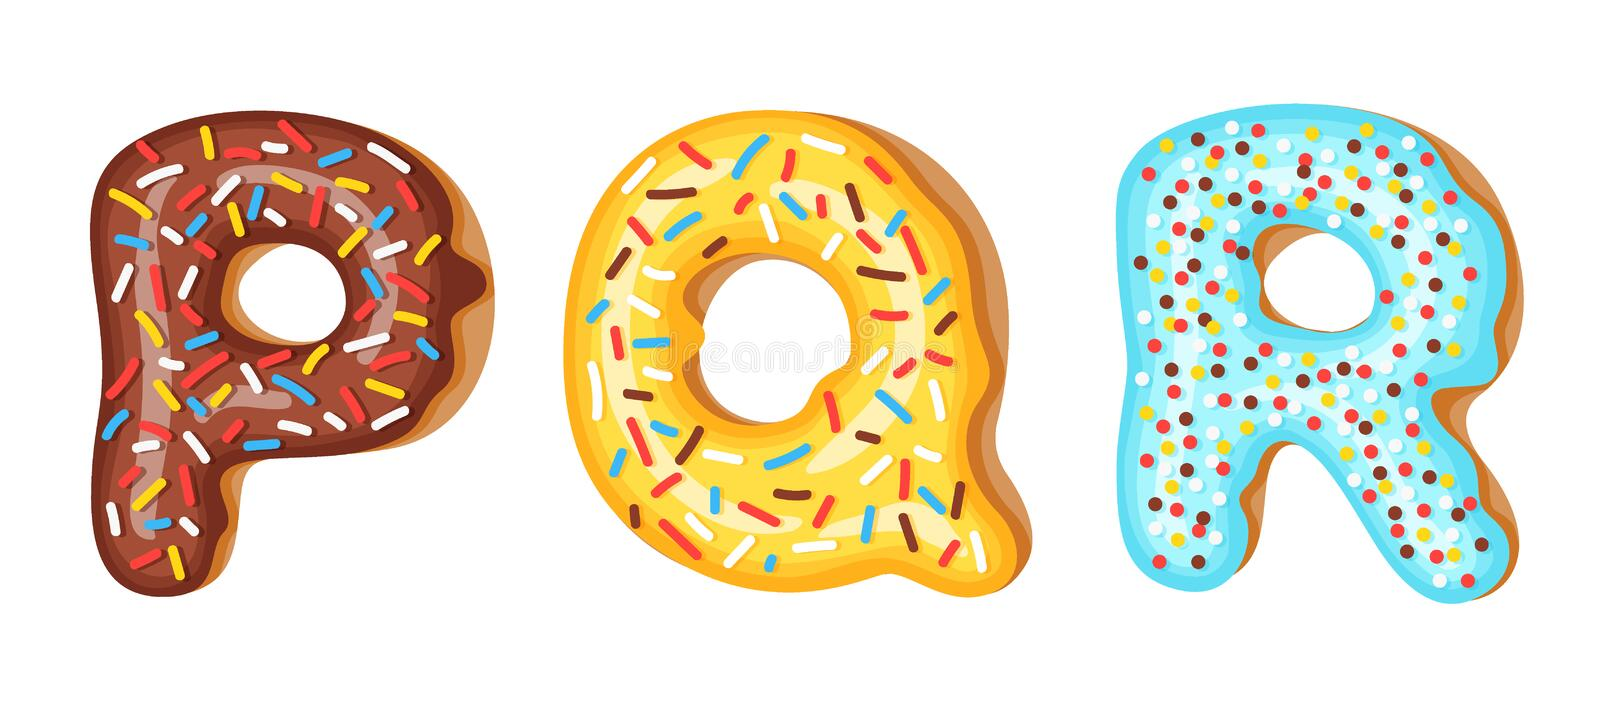 Donut icing upper latters - P, Q, R. Font of donuts. Bakery sweet alphabet. Donut alphabet latters A b C isolated on. White background, vector illustration royalty free illustration